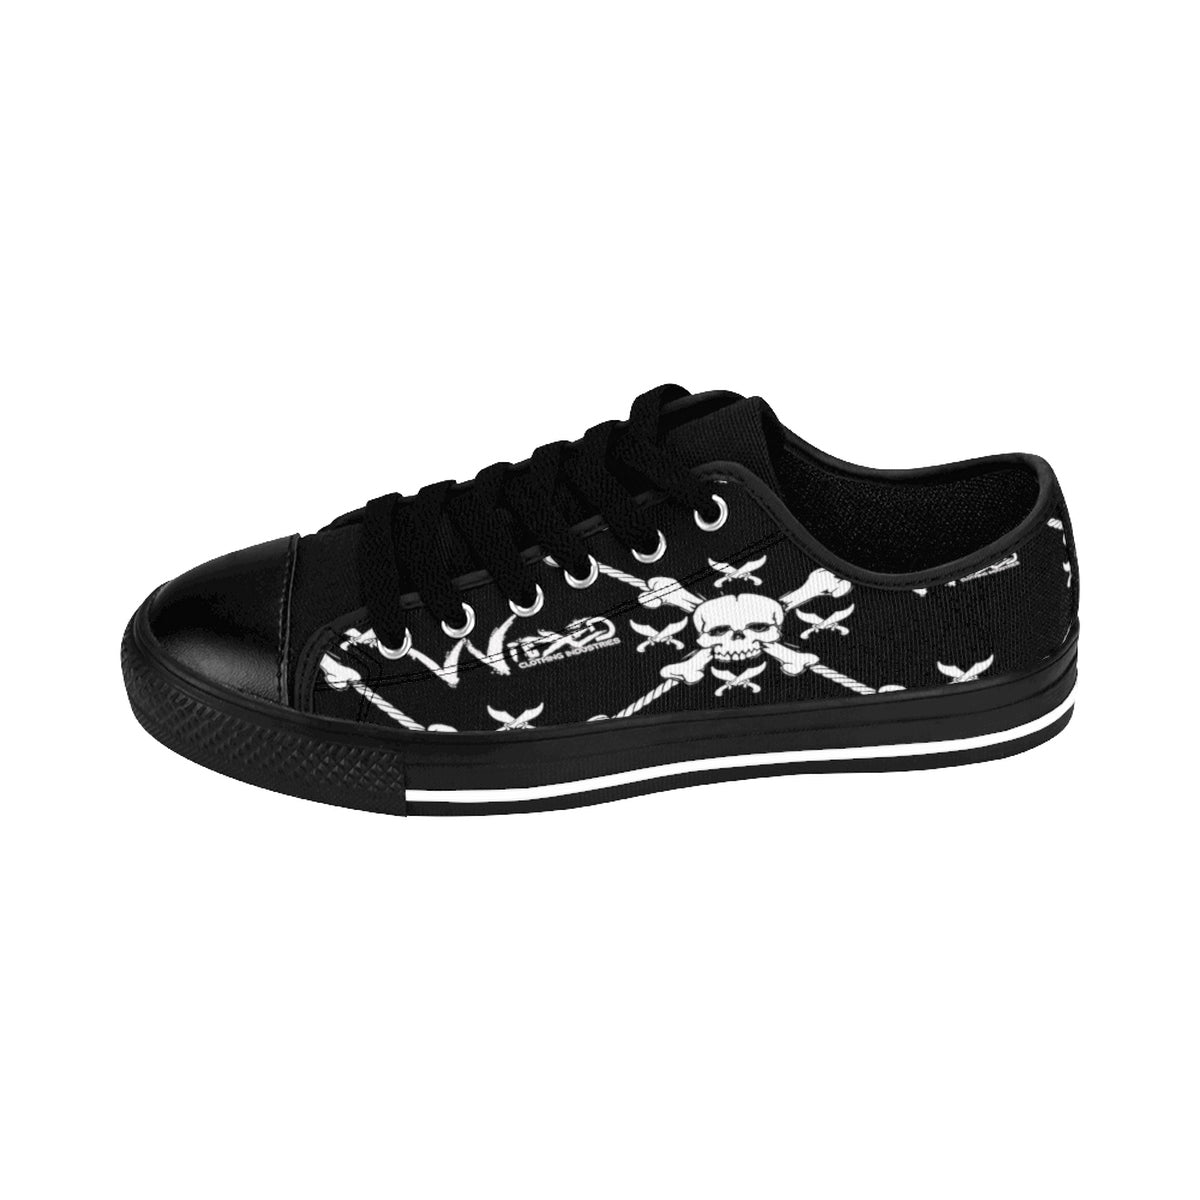 Women's Sneakers Wicked Pirate